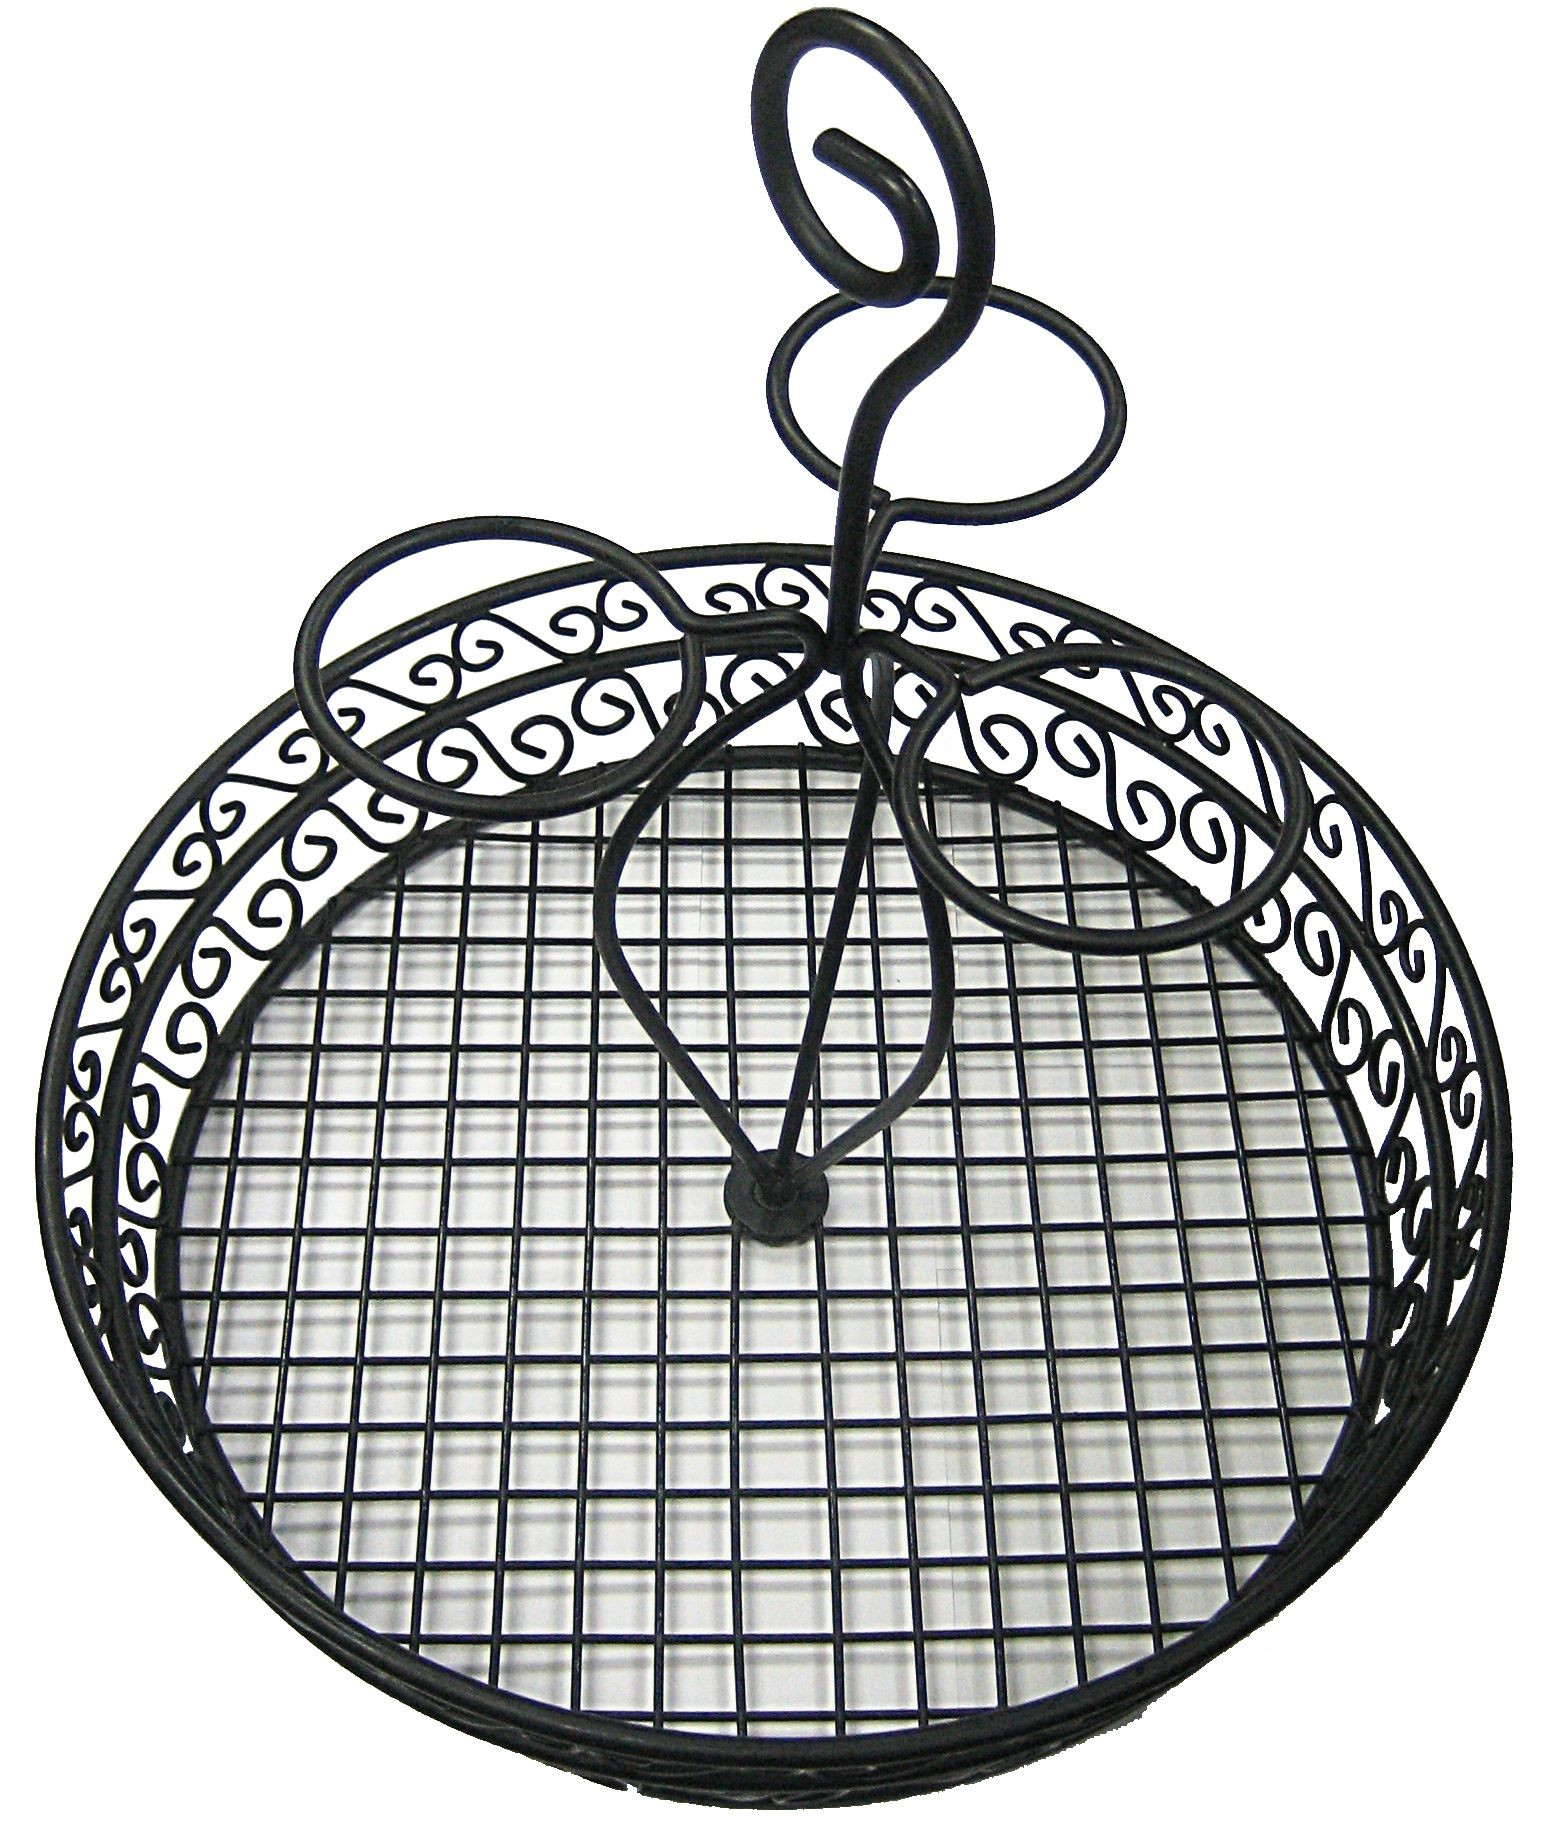 "Winco wbkh-12 Round Black Wire Condiment Caddy 12"" x 13"""